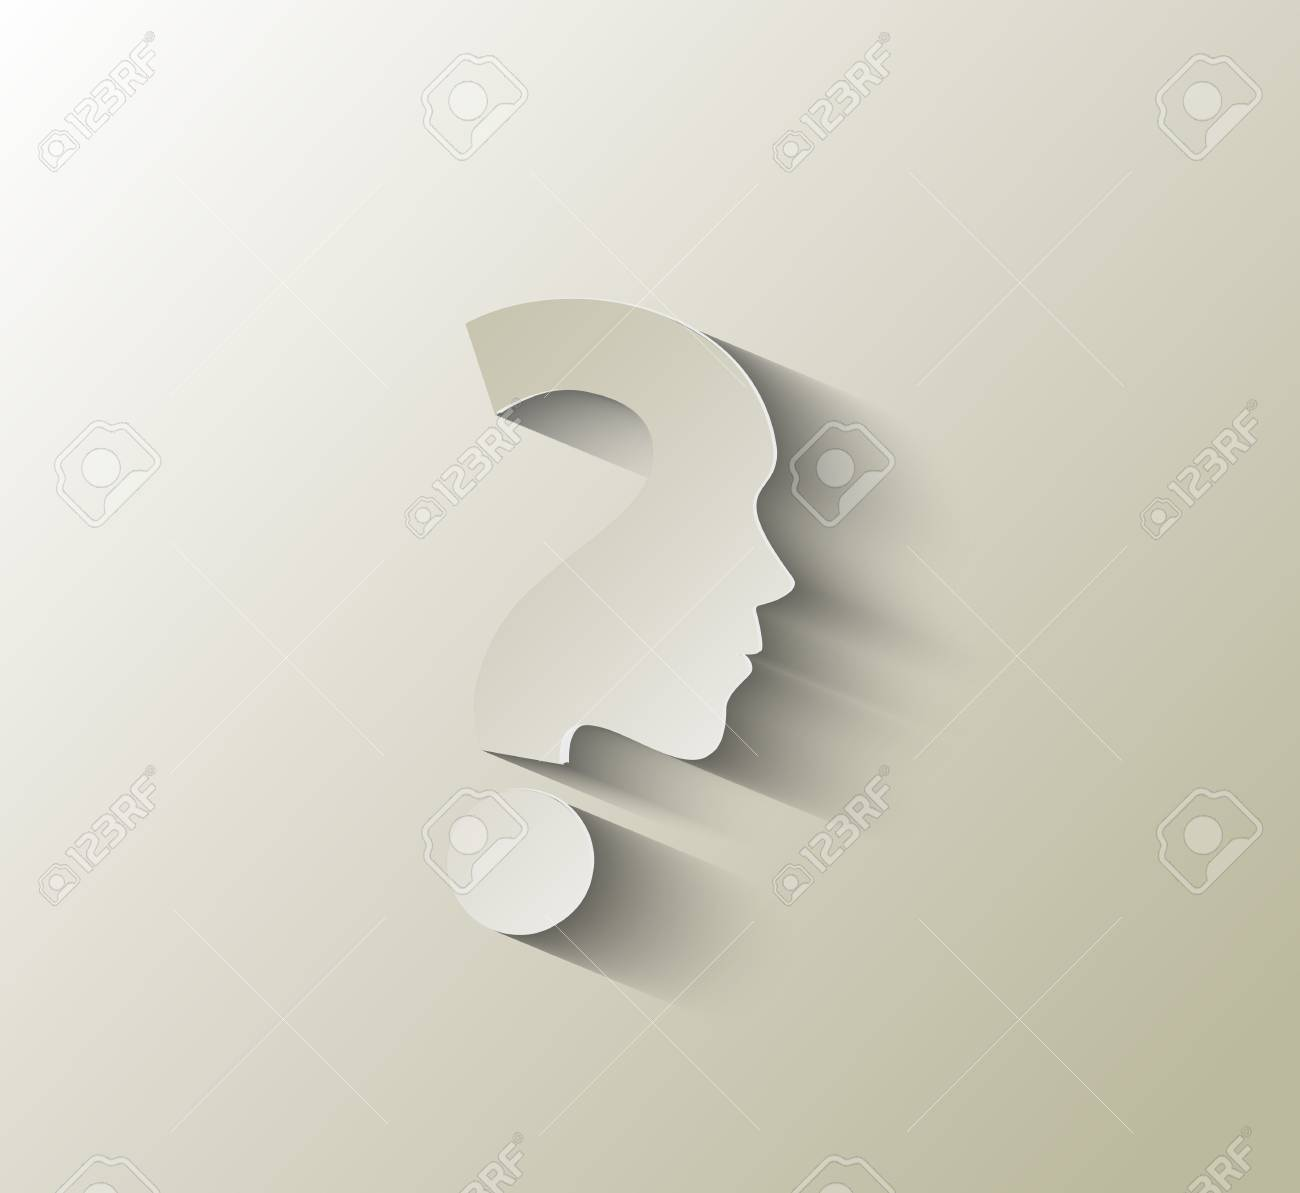 vector symbol of question mark in white background. Stock Vector - 16577533